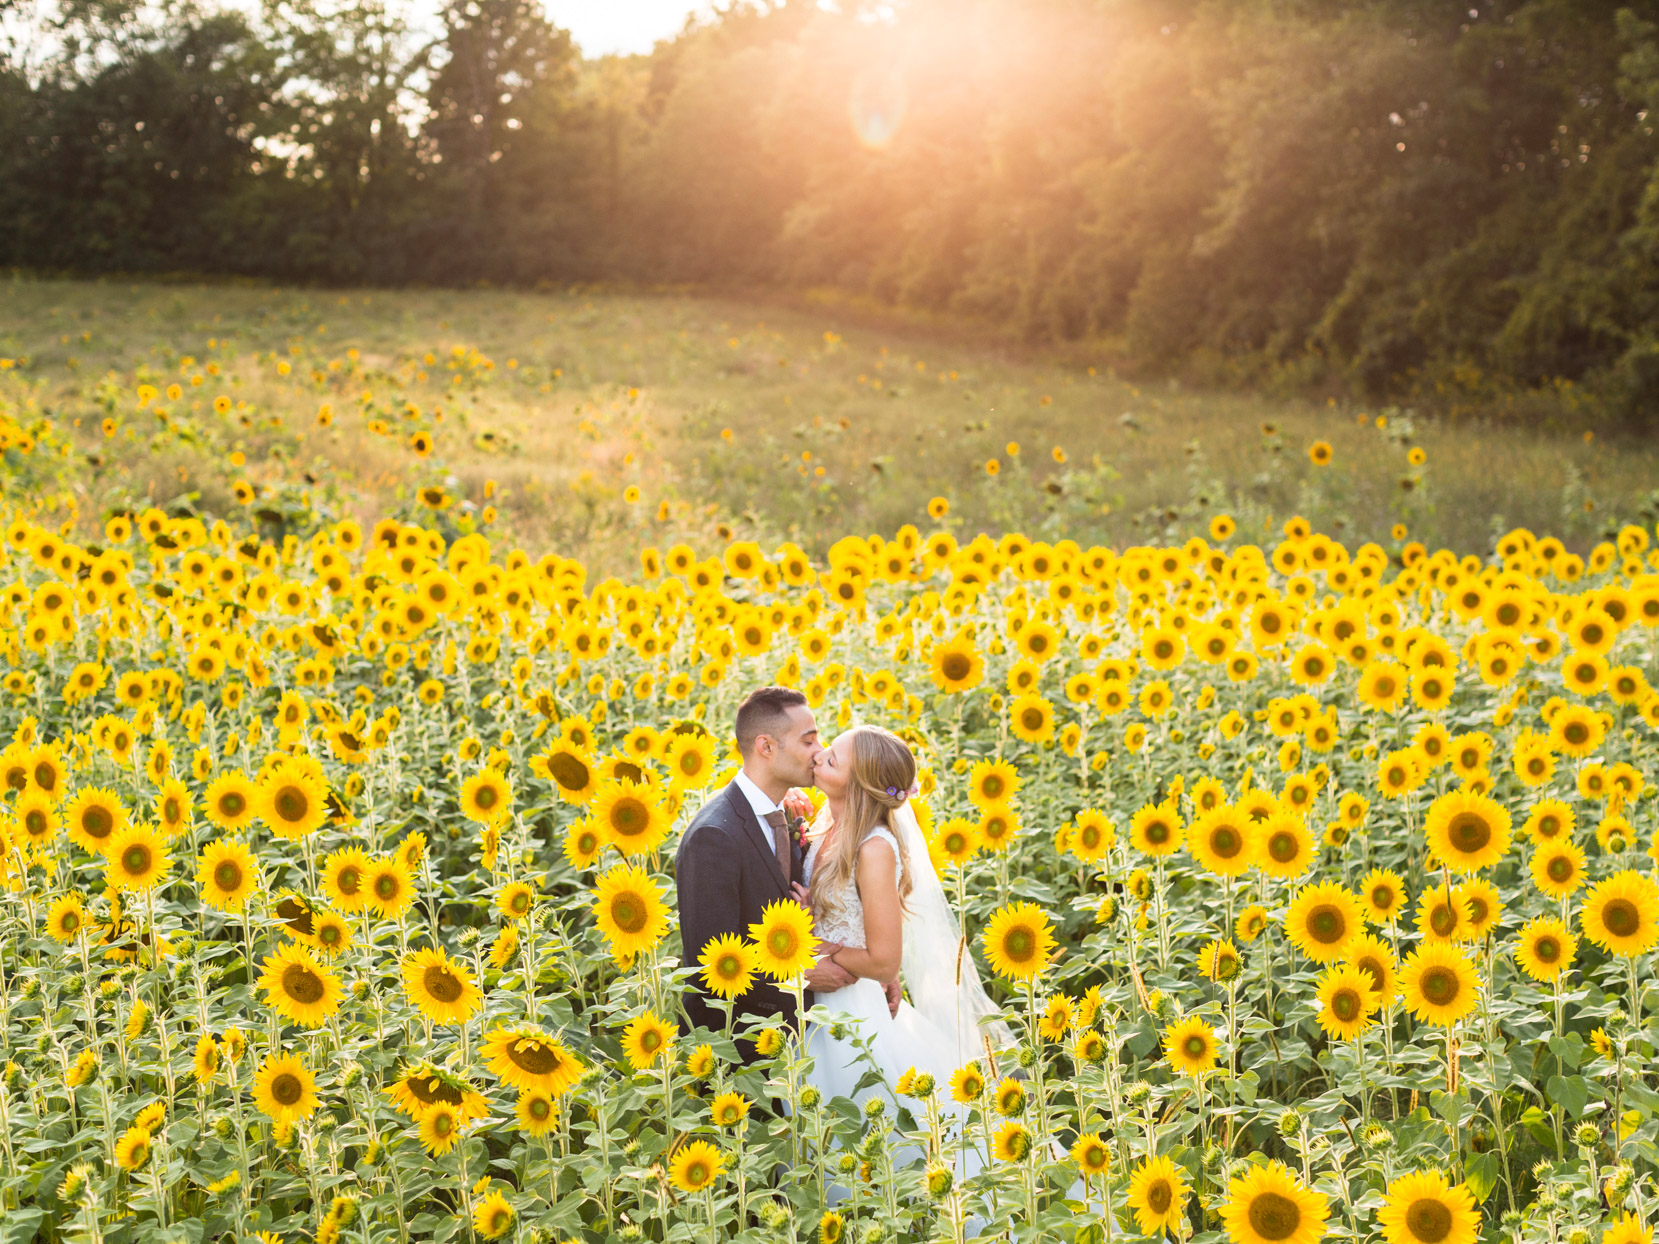 couple kissing in field of sunflowers